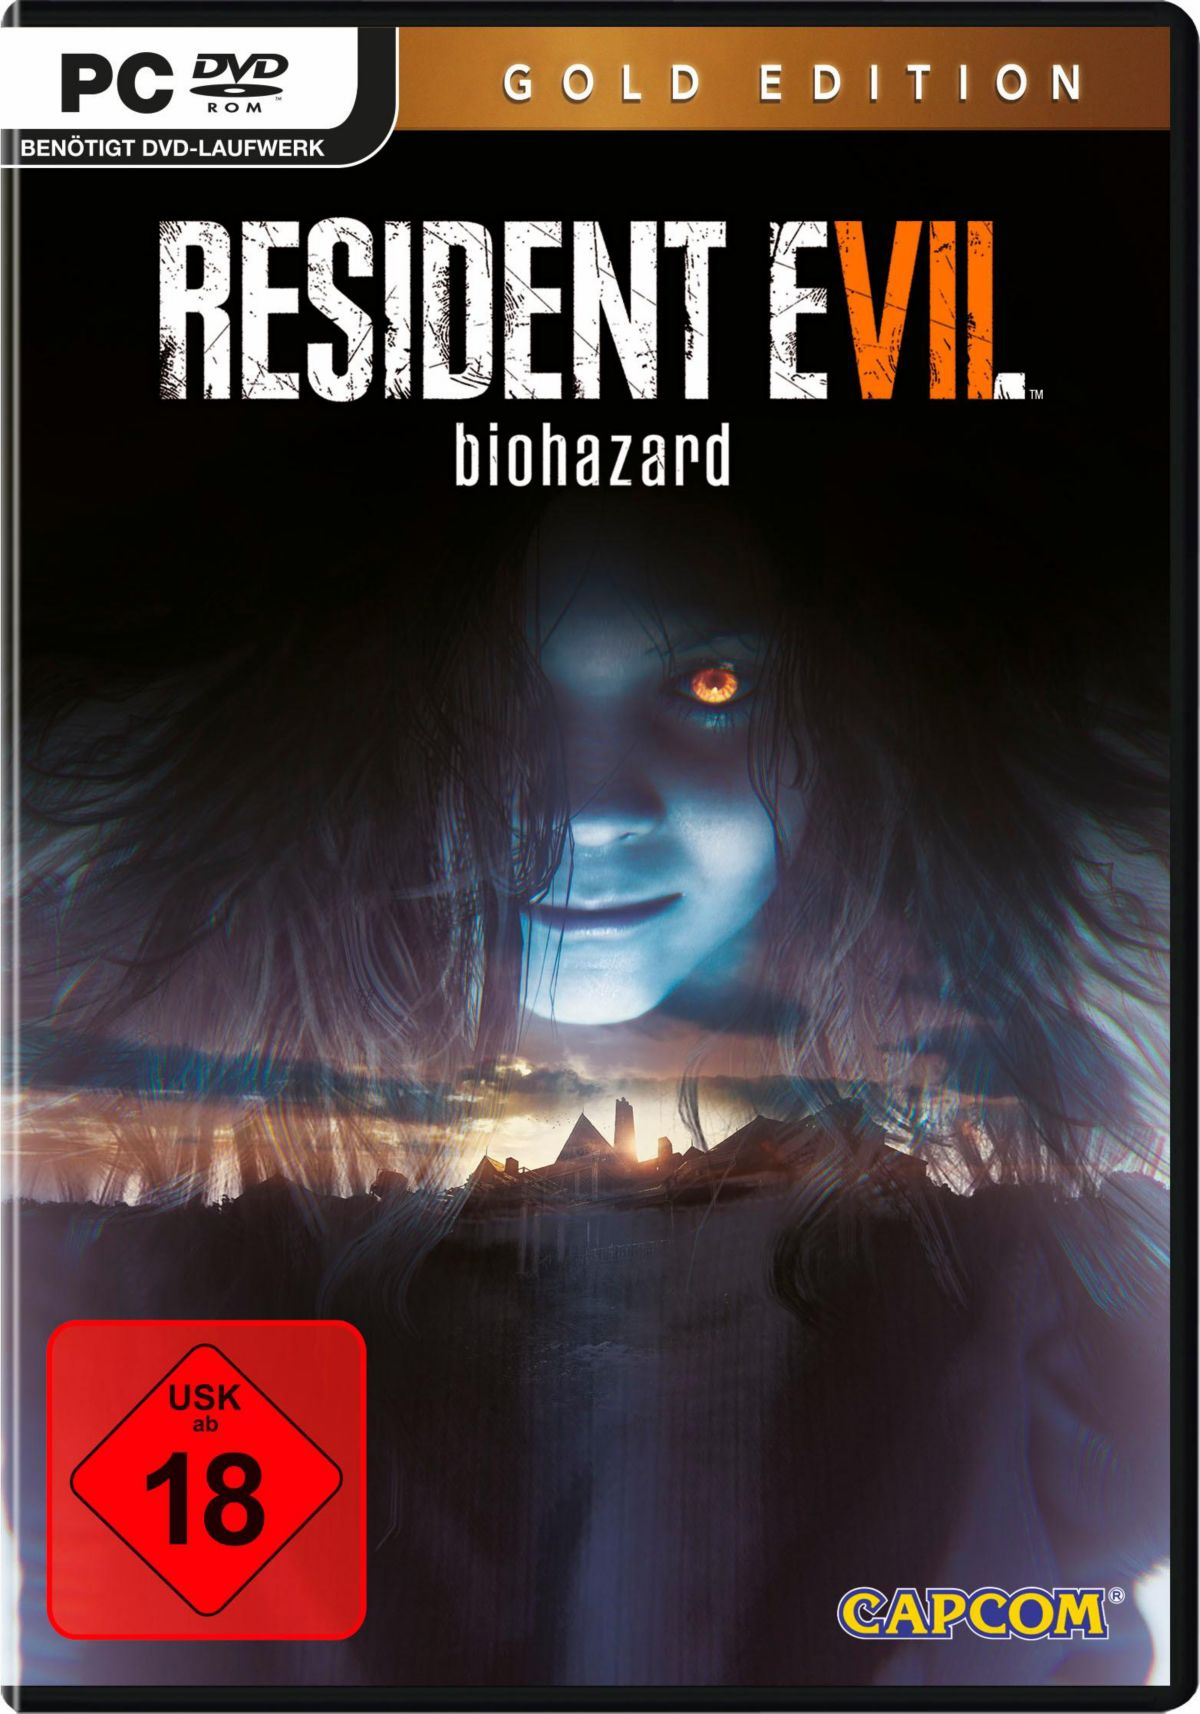 Resident Evil 7 biohazard Gold Edition PC (DVD-...